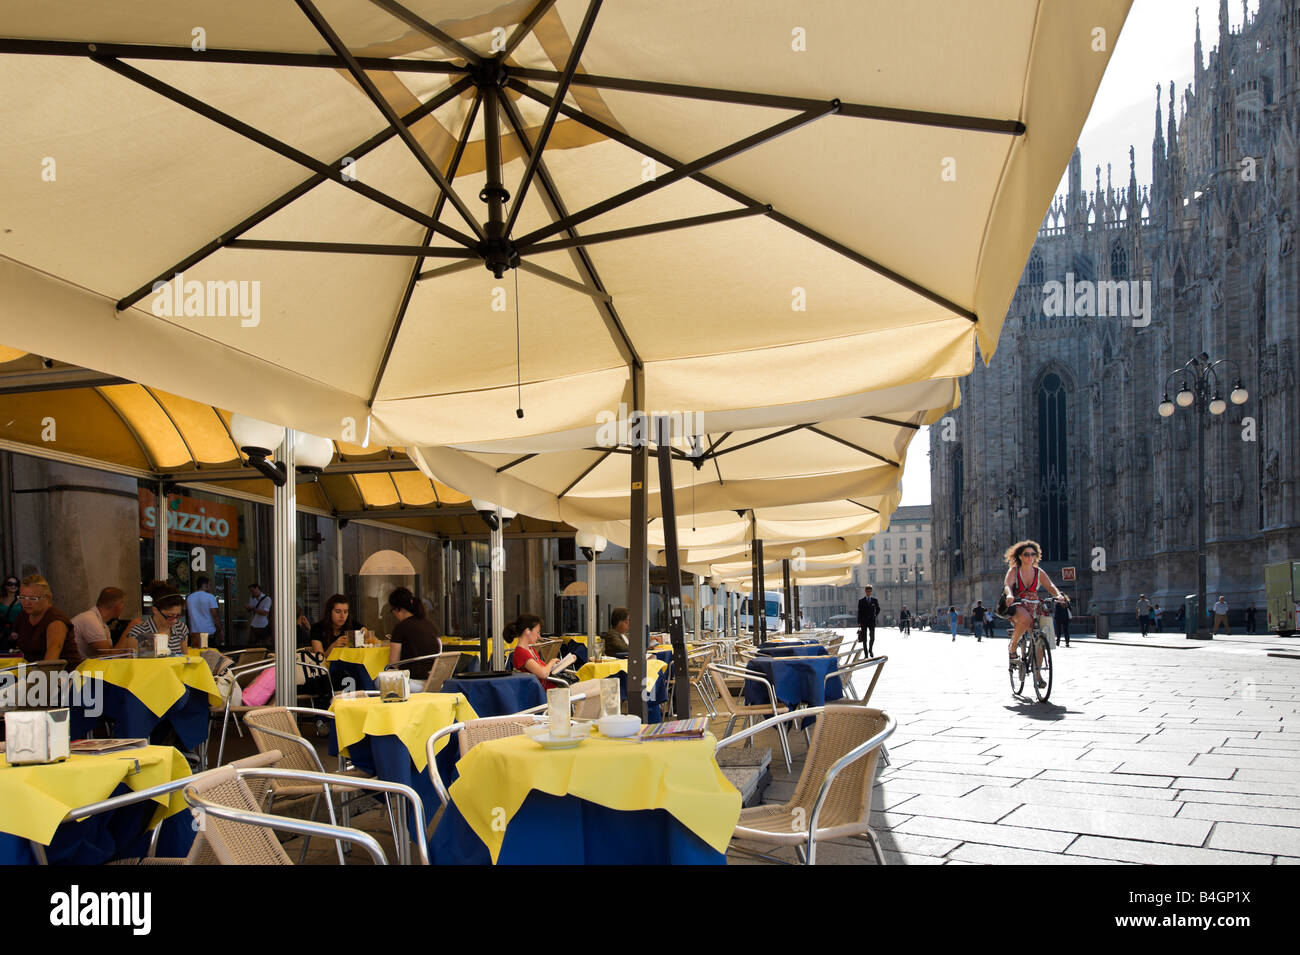 Cafe outside the Duomo (Cathedral), Piazza del  Duomo, Milan, Lombardy, Italy - Stock Image